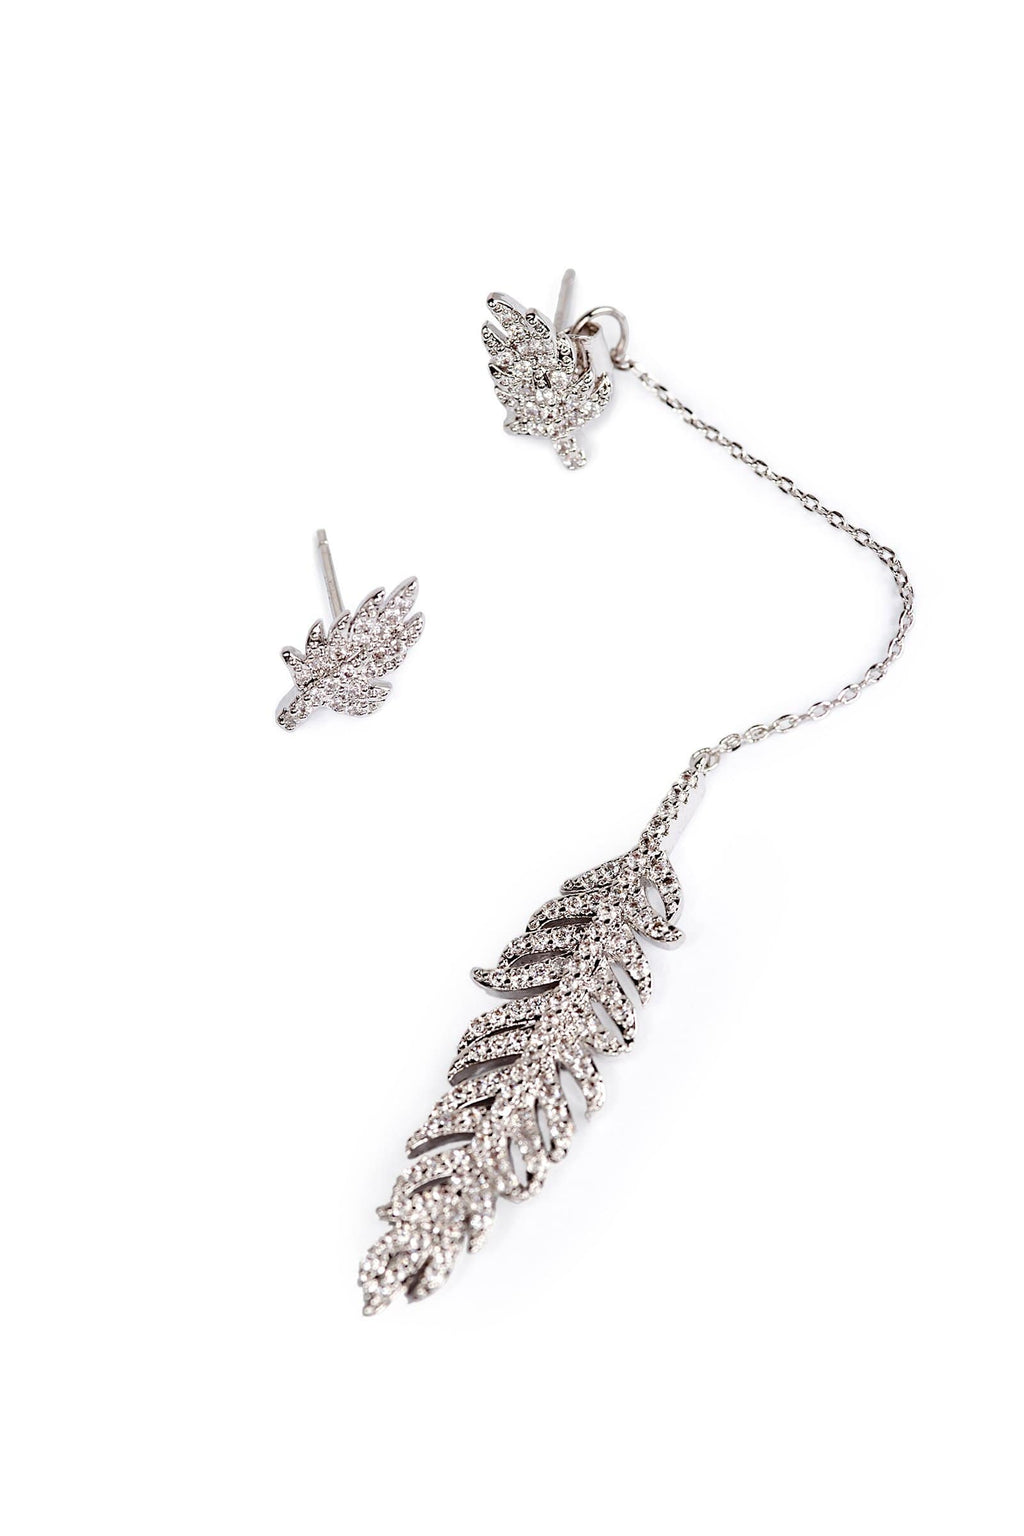 Silver colored asymmetrical earrings encrusted in zircon crystals with hanging leaf pendant | J.ING women's accessories